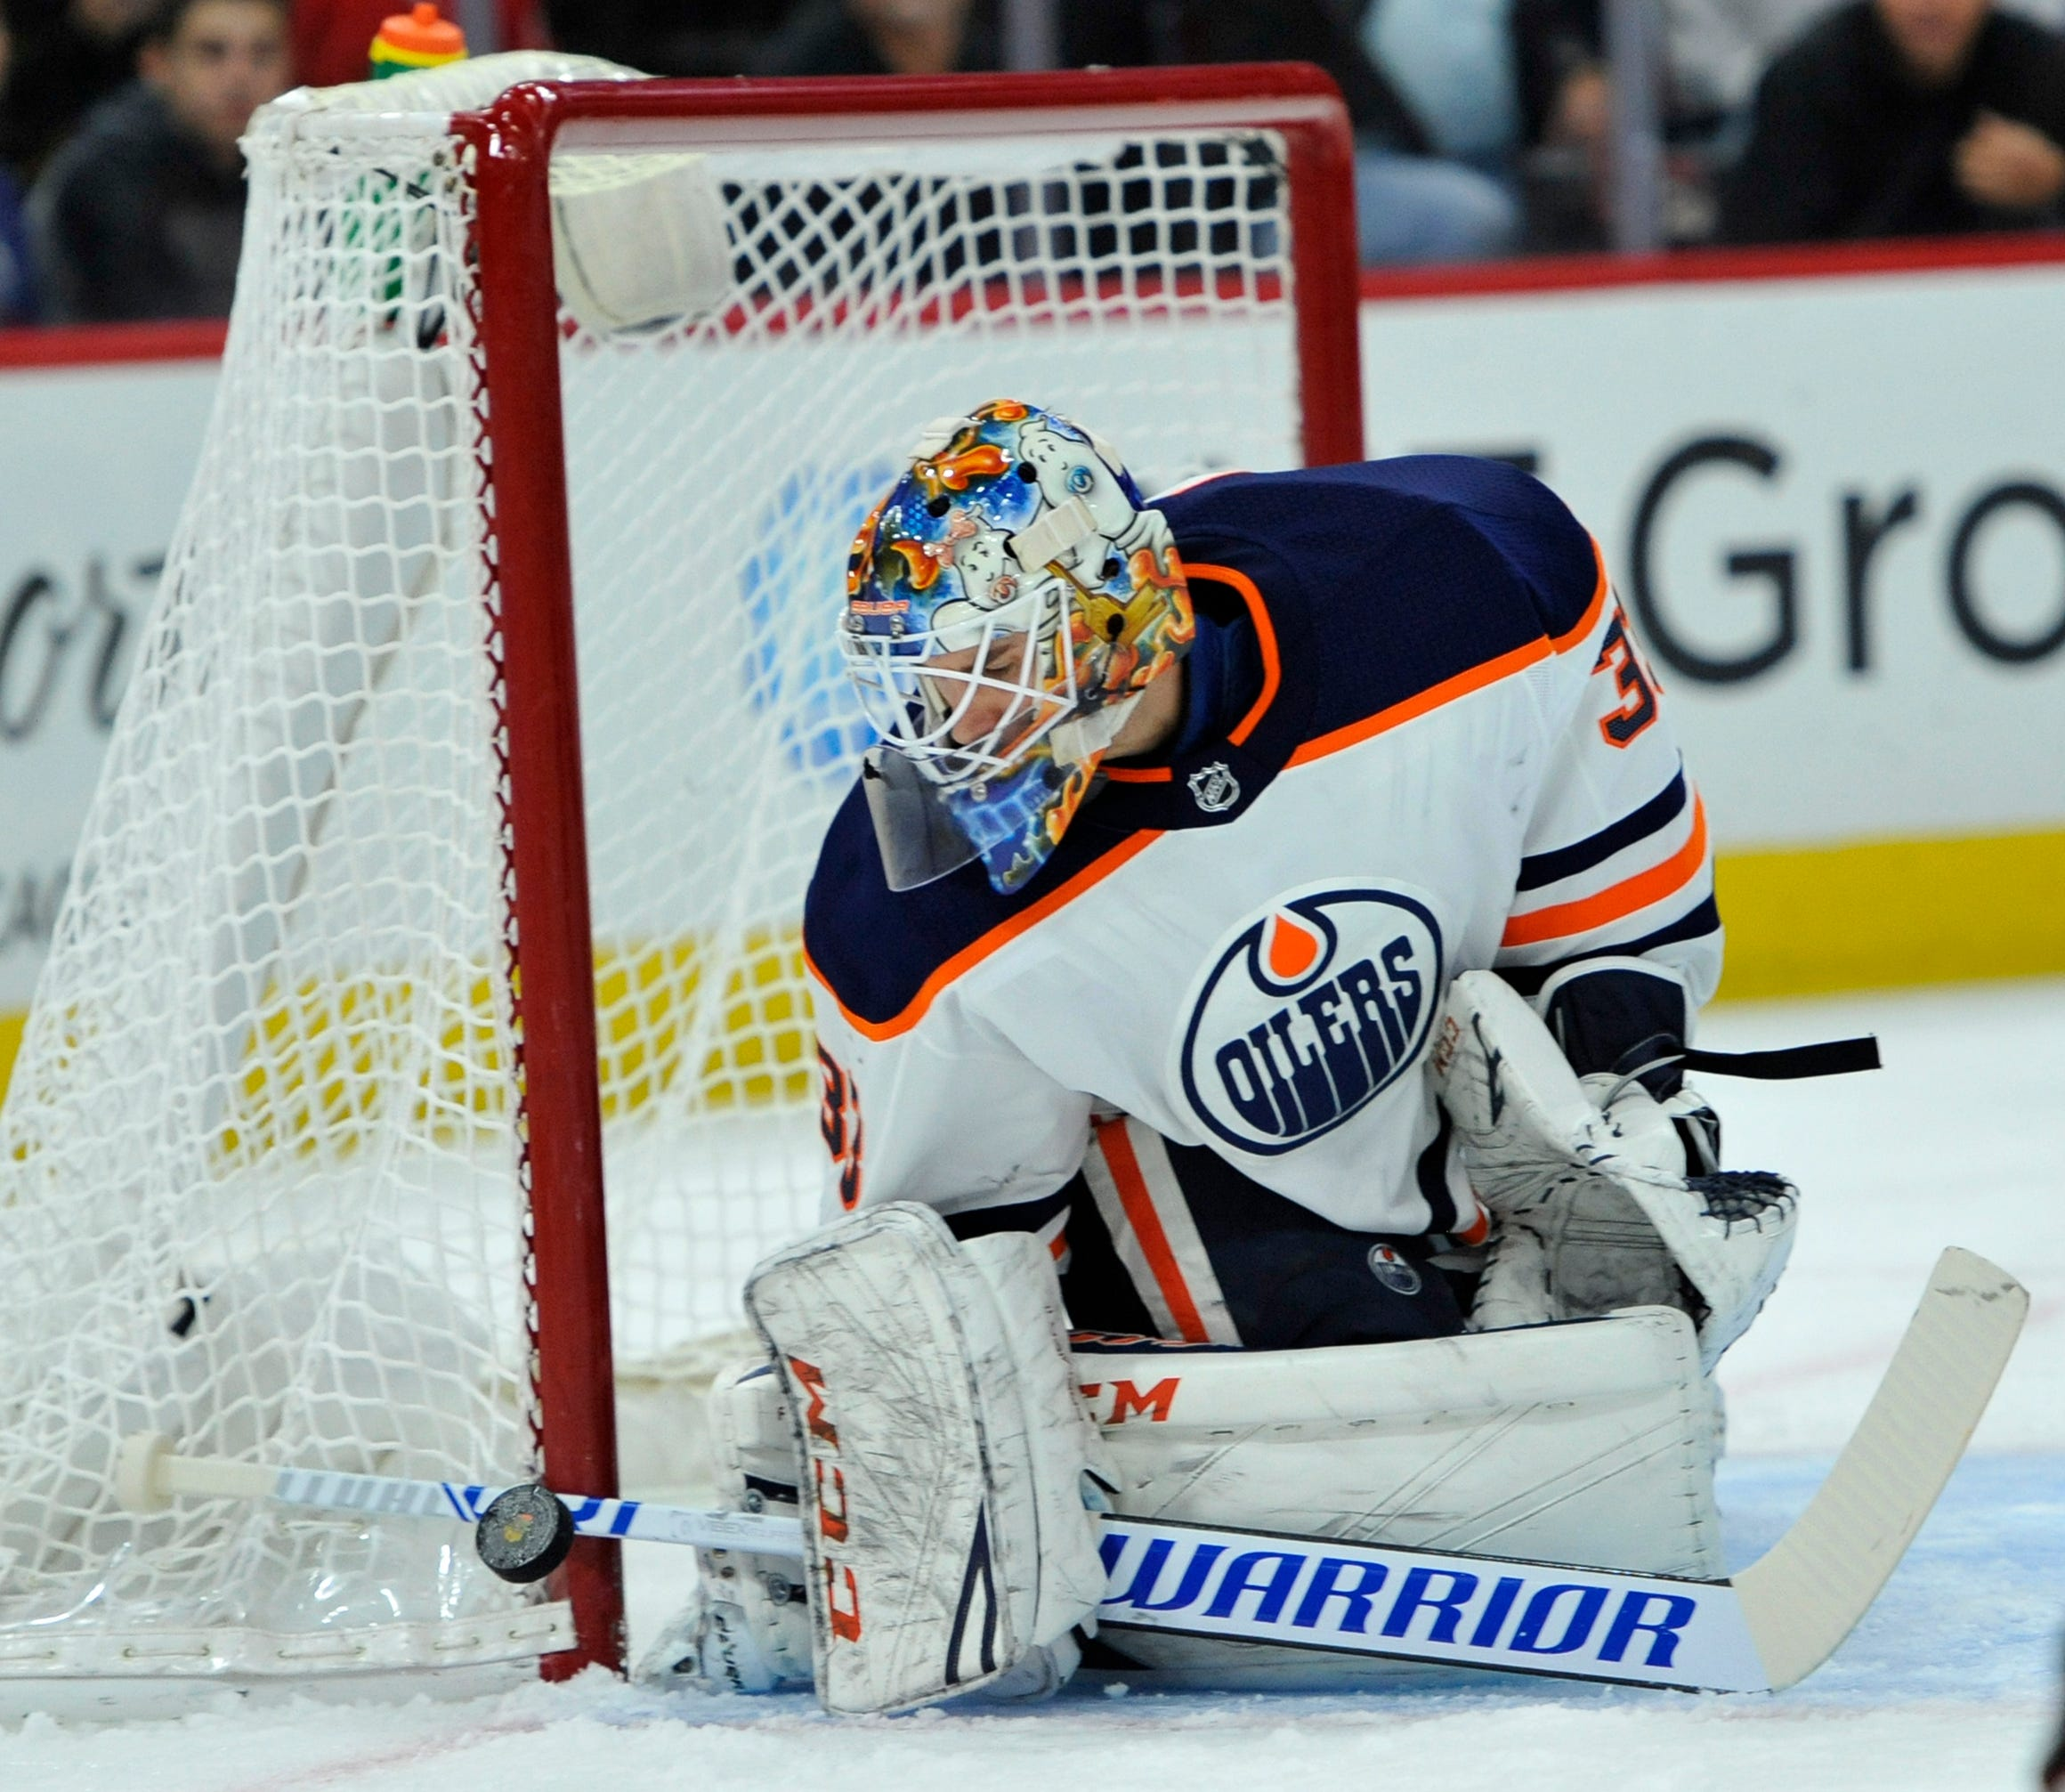 Mark Letestu scores in OT, Oilers beat Blackhawks 2-1